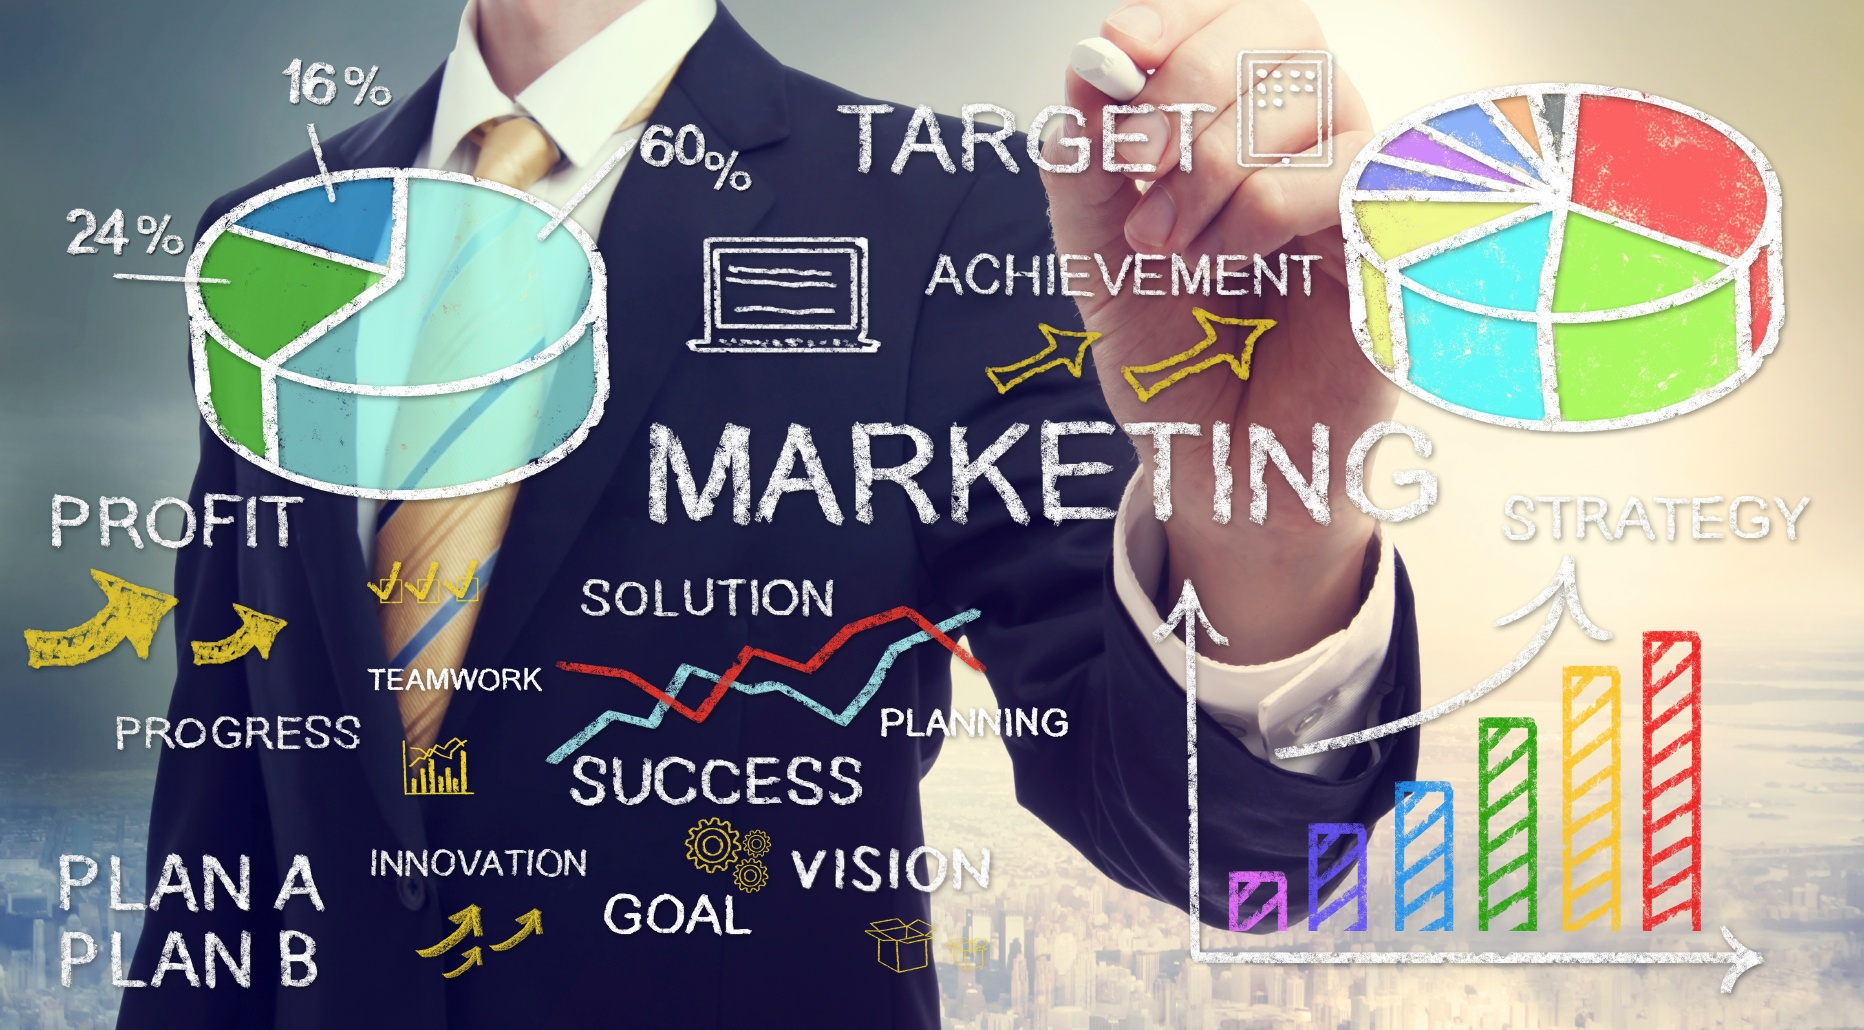 Content marketing should form part of your ongoing strategy